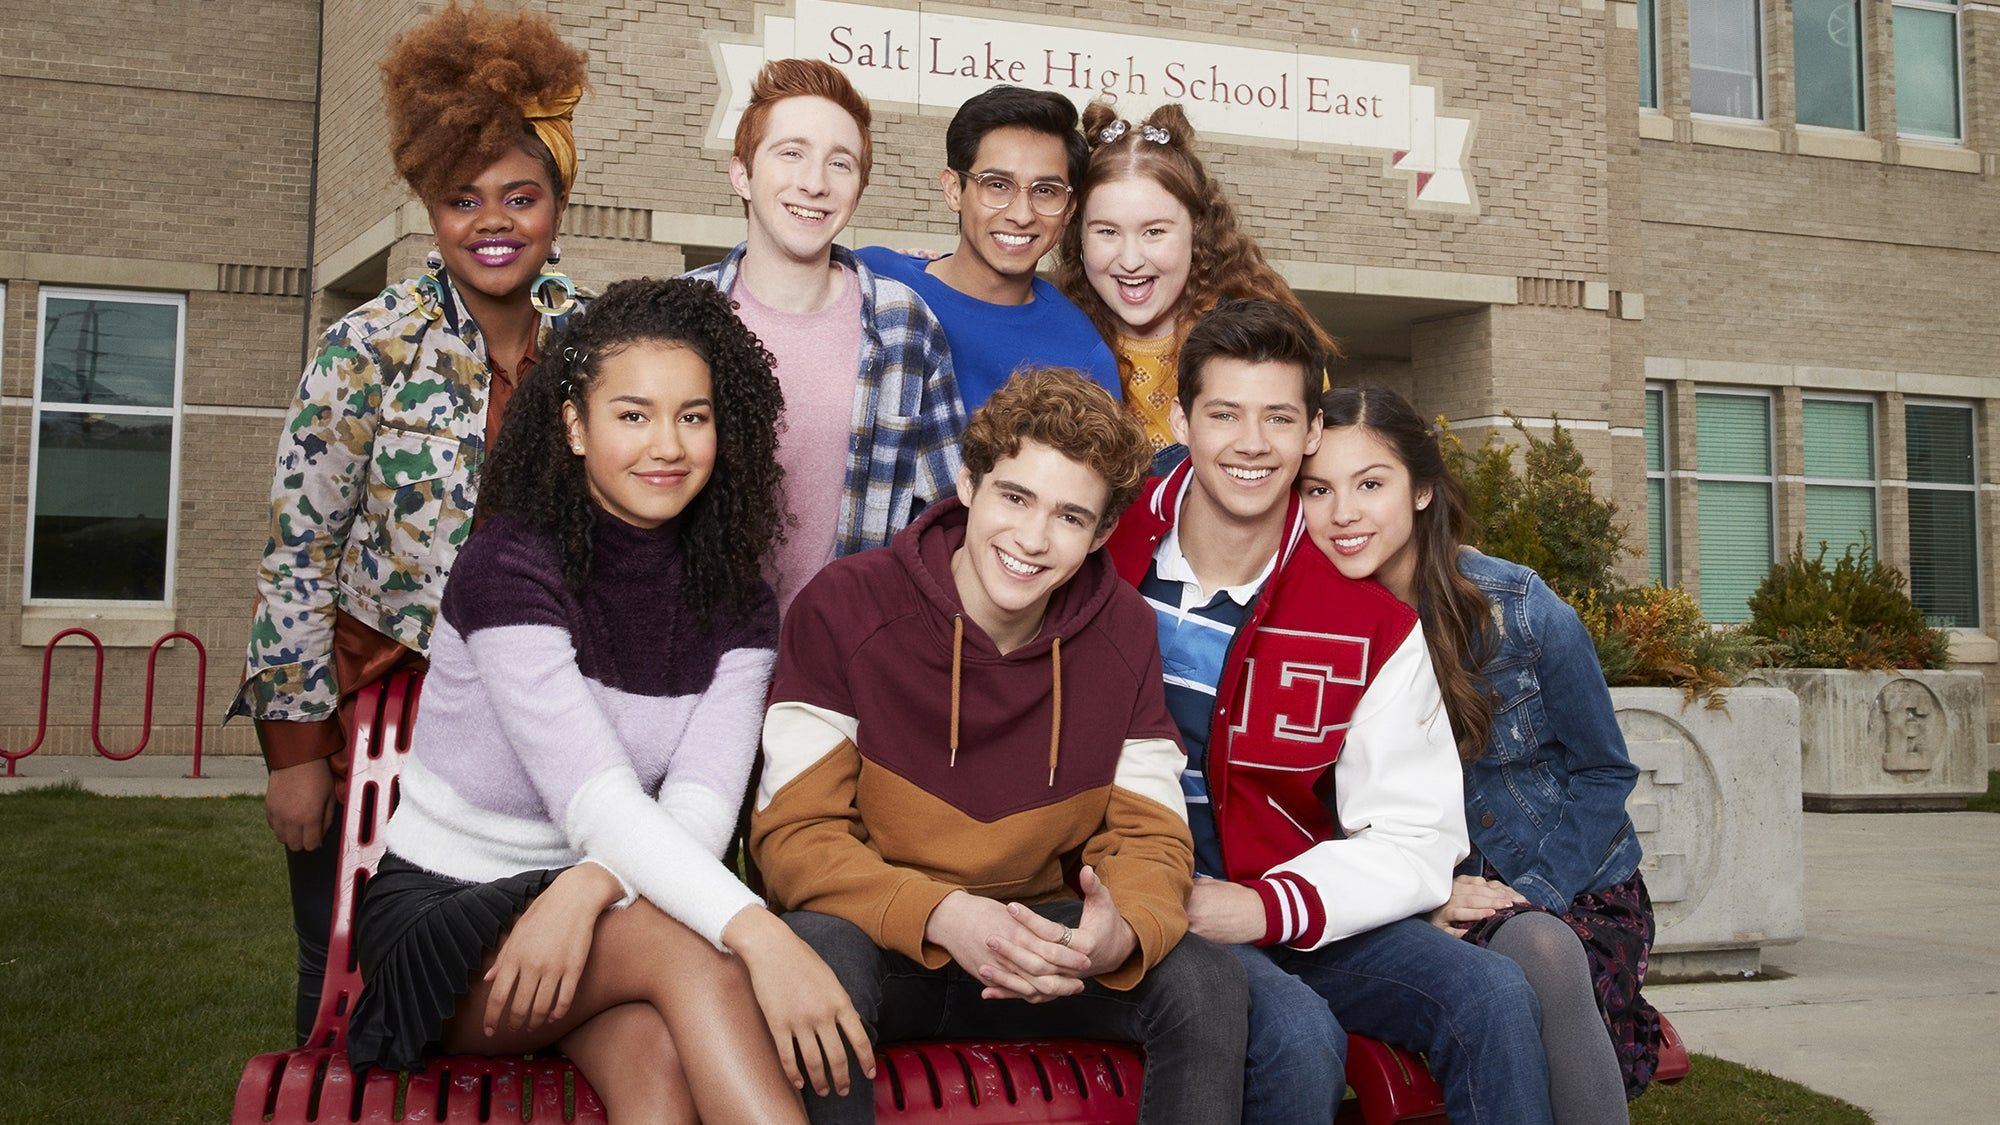 Who 8217 S The Troy Bolton Of The High School Musical The Musical The Series Cast Refinery29 Https W High School Musical Brooklyn And Bailey Disney Plus